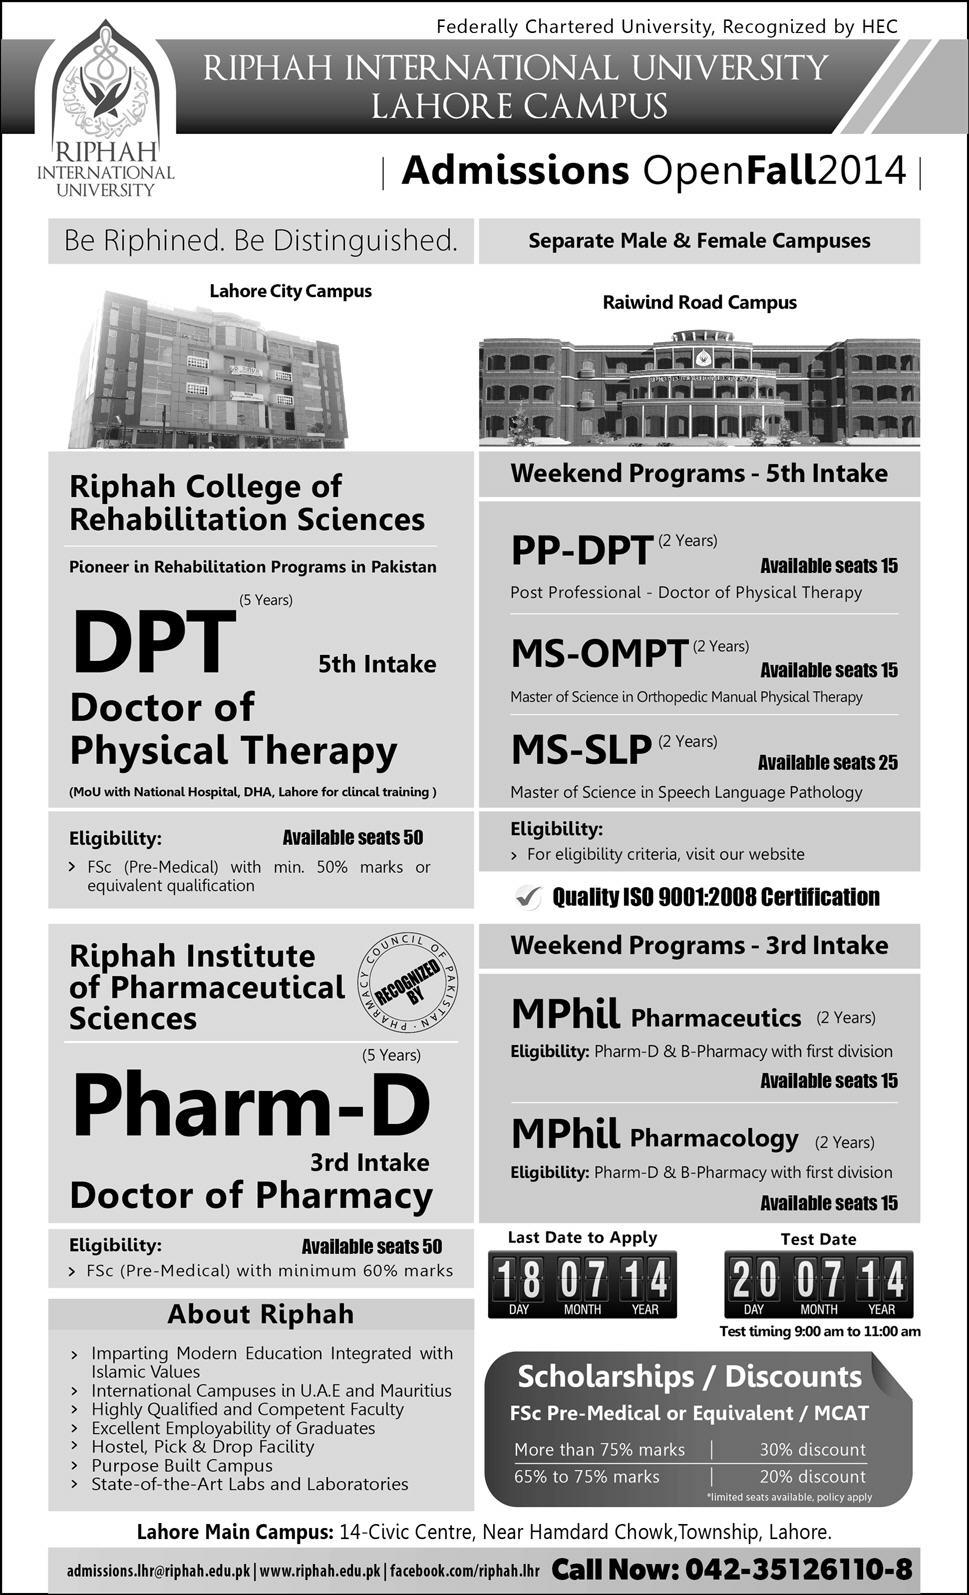 Riphah International University Lahore Campus Admission Notice 2014